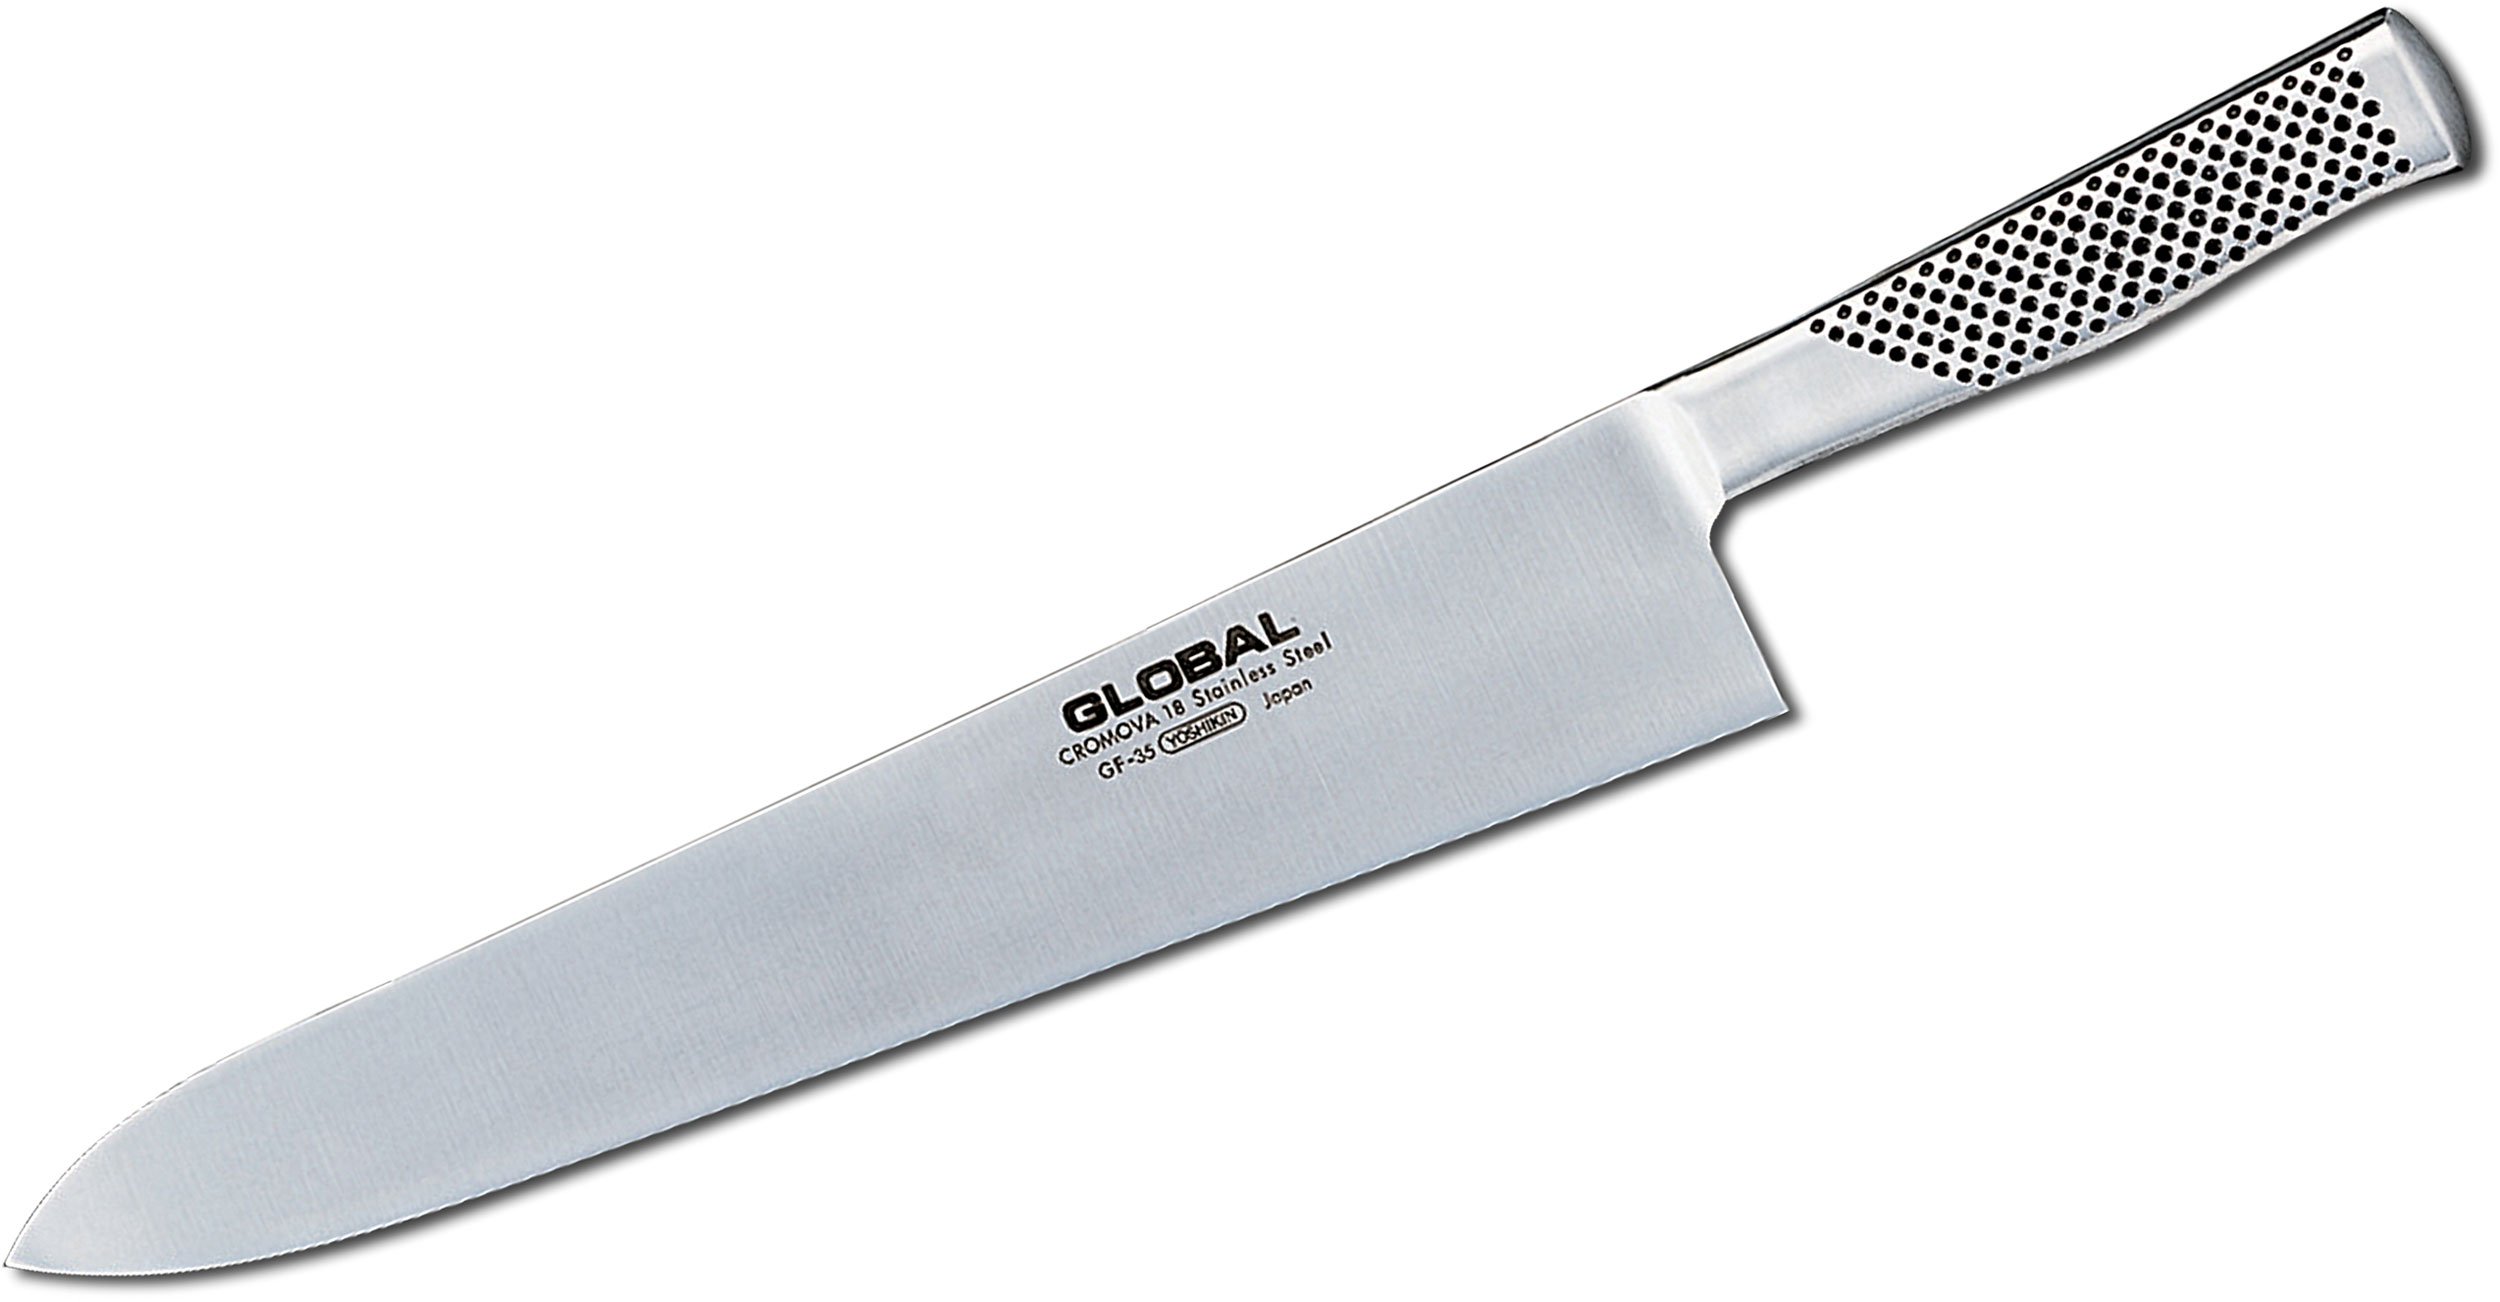 Global GF-35 Classic 12 inch Forged Chef's Knife